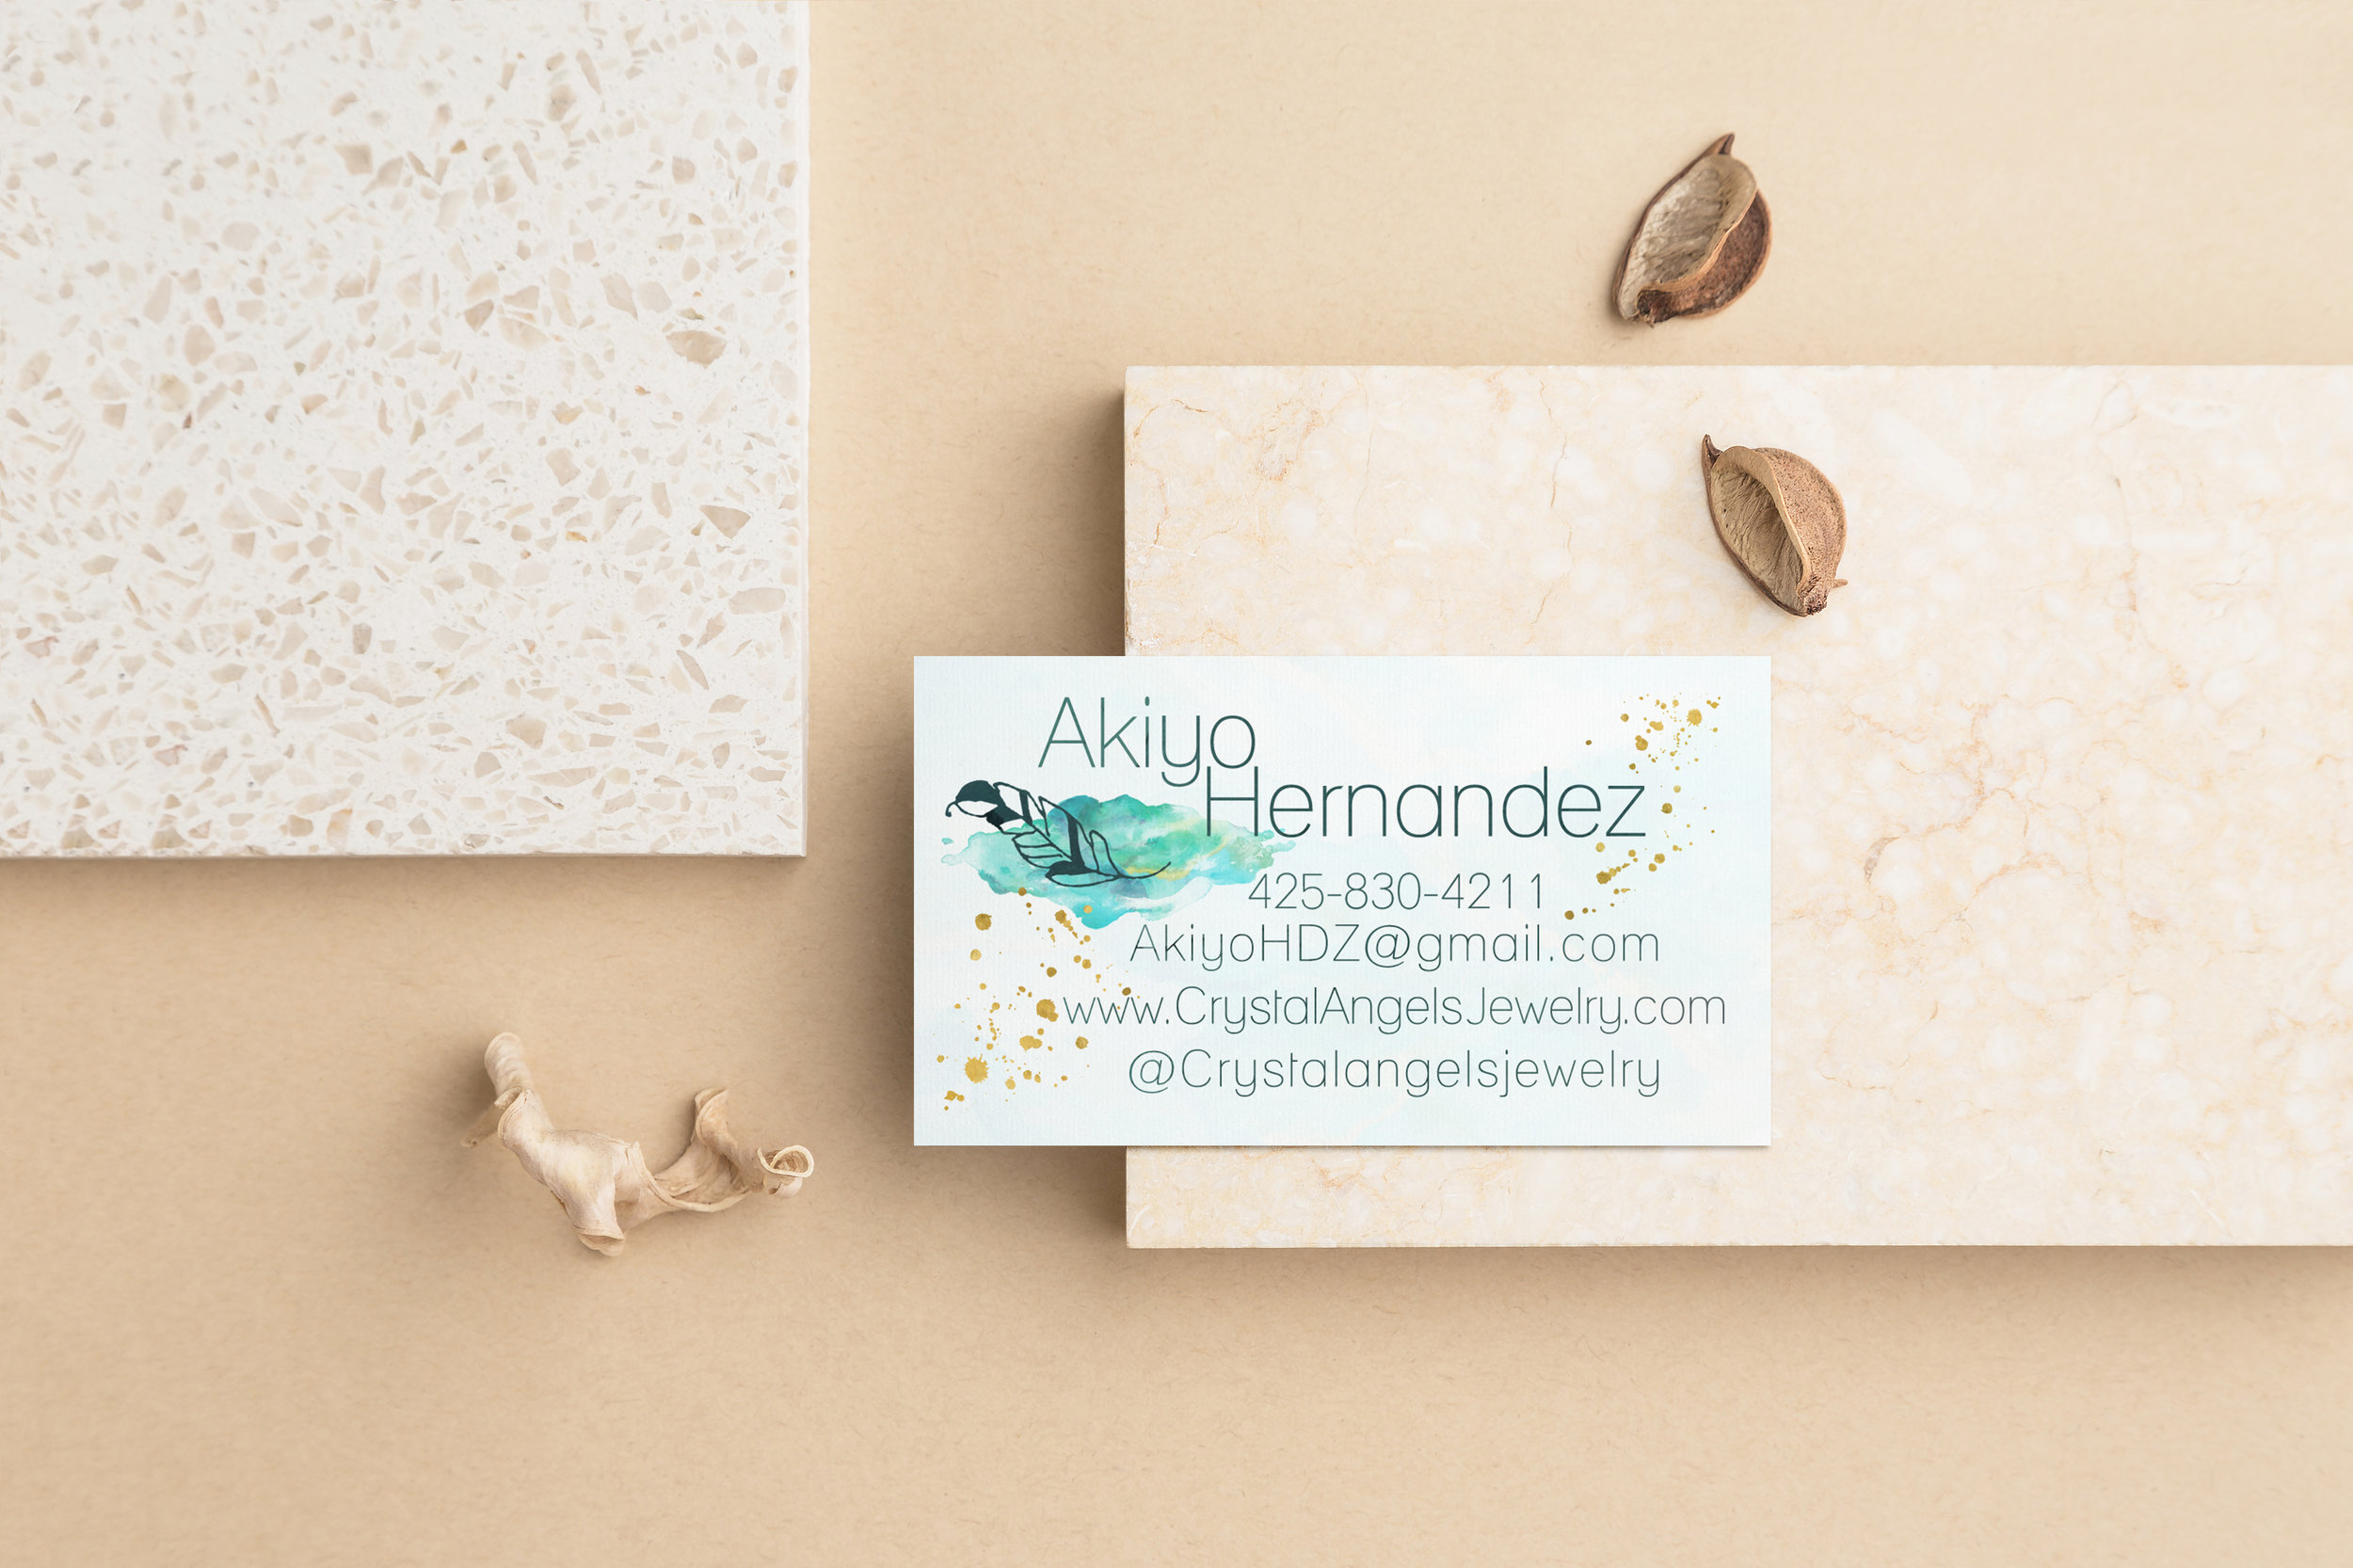 Crystal Angels Back Business Card Mockup.JPG